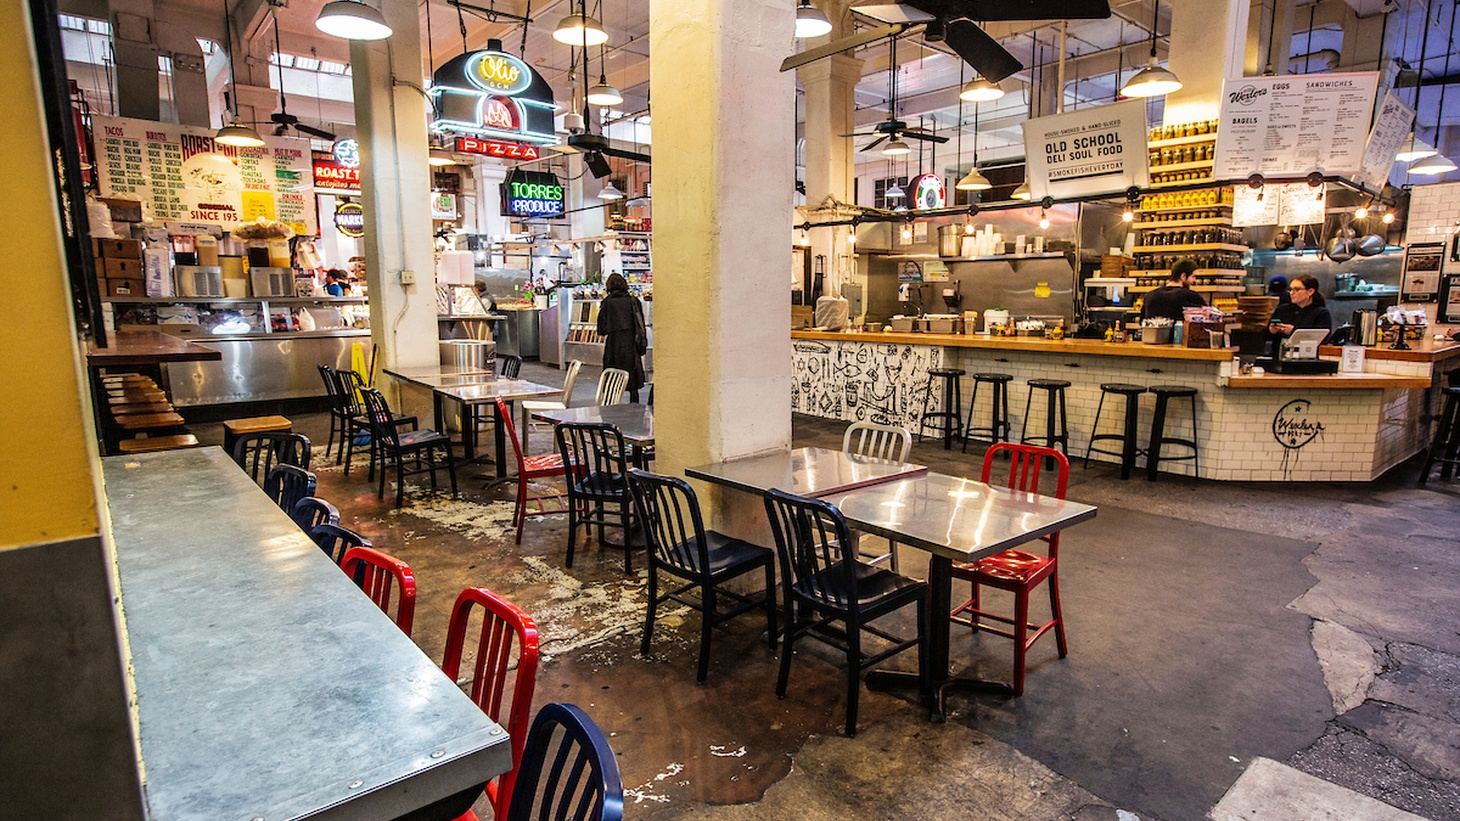 Grand Central Market in downtown LA is largely empty as stay-at-home orders continue. Restaurants and many other businesses here are hurting economically.